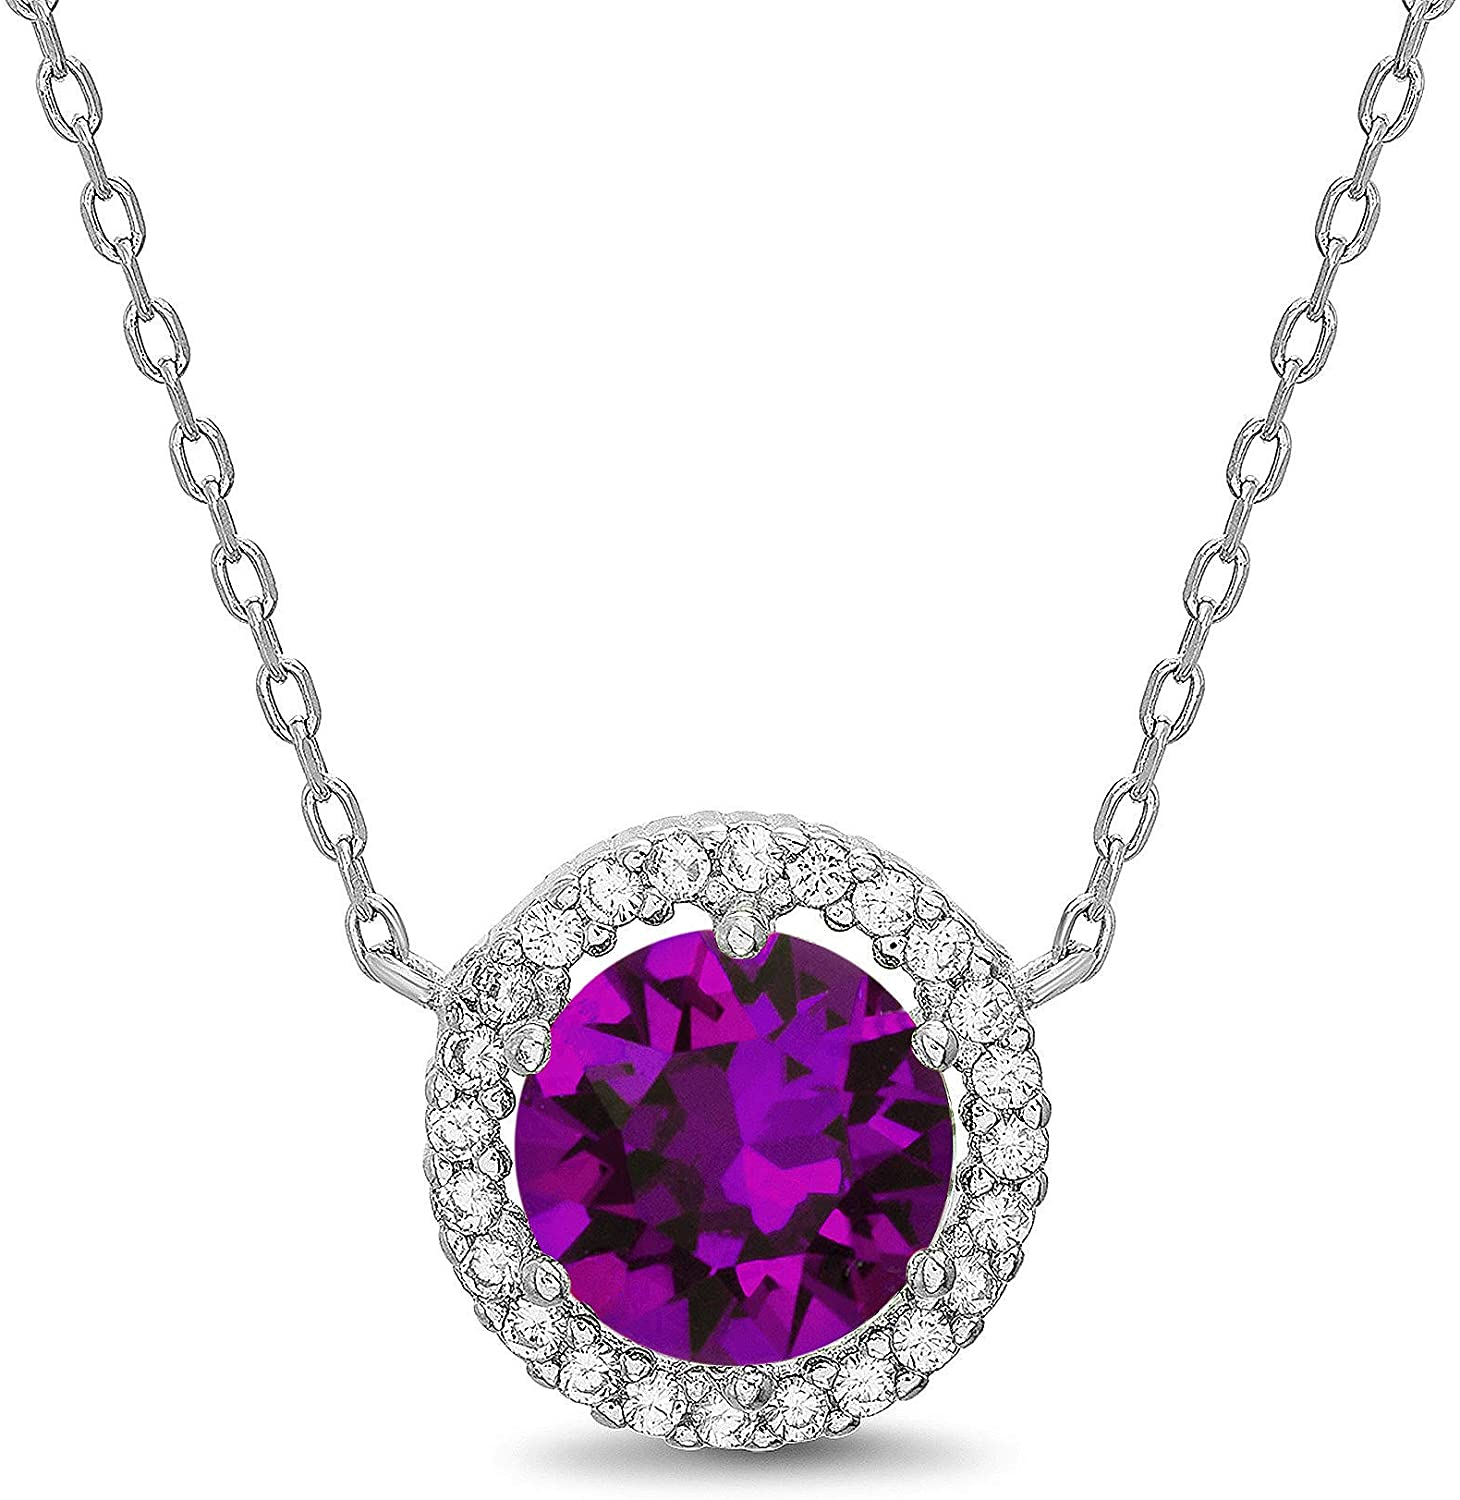 Devin Rose Rhodium Plated Sterling Silver Round Halo Pendant Necklace on 18 Inch Necklace for Women made with Swarovski Crystals Birthstone Colors